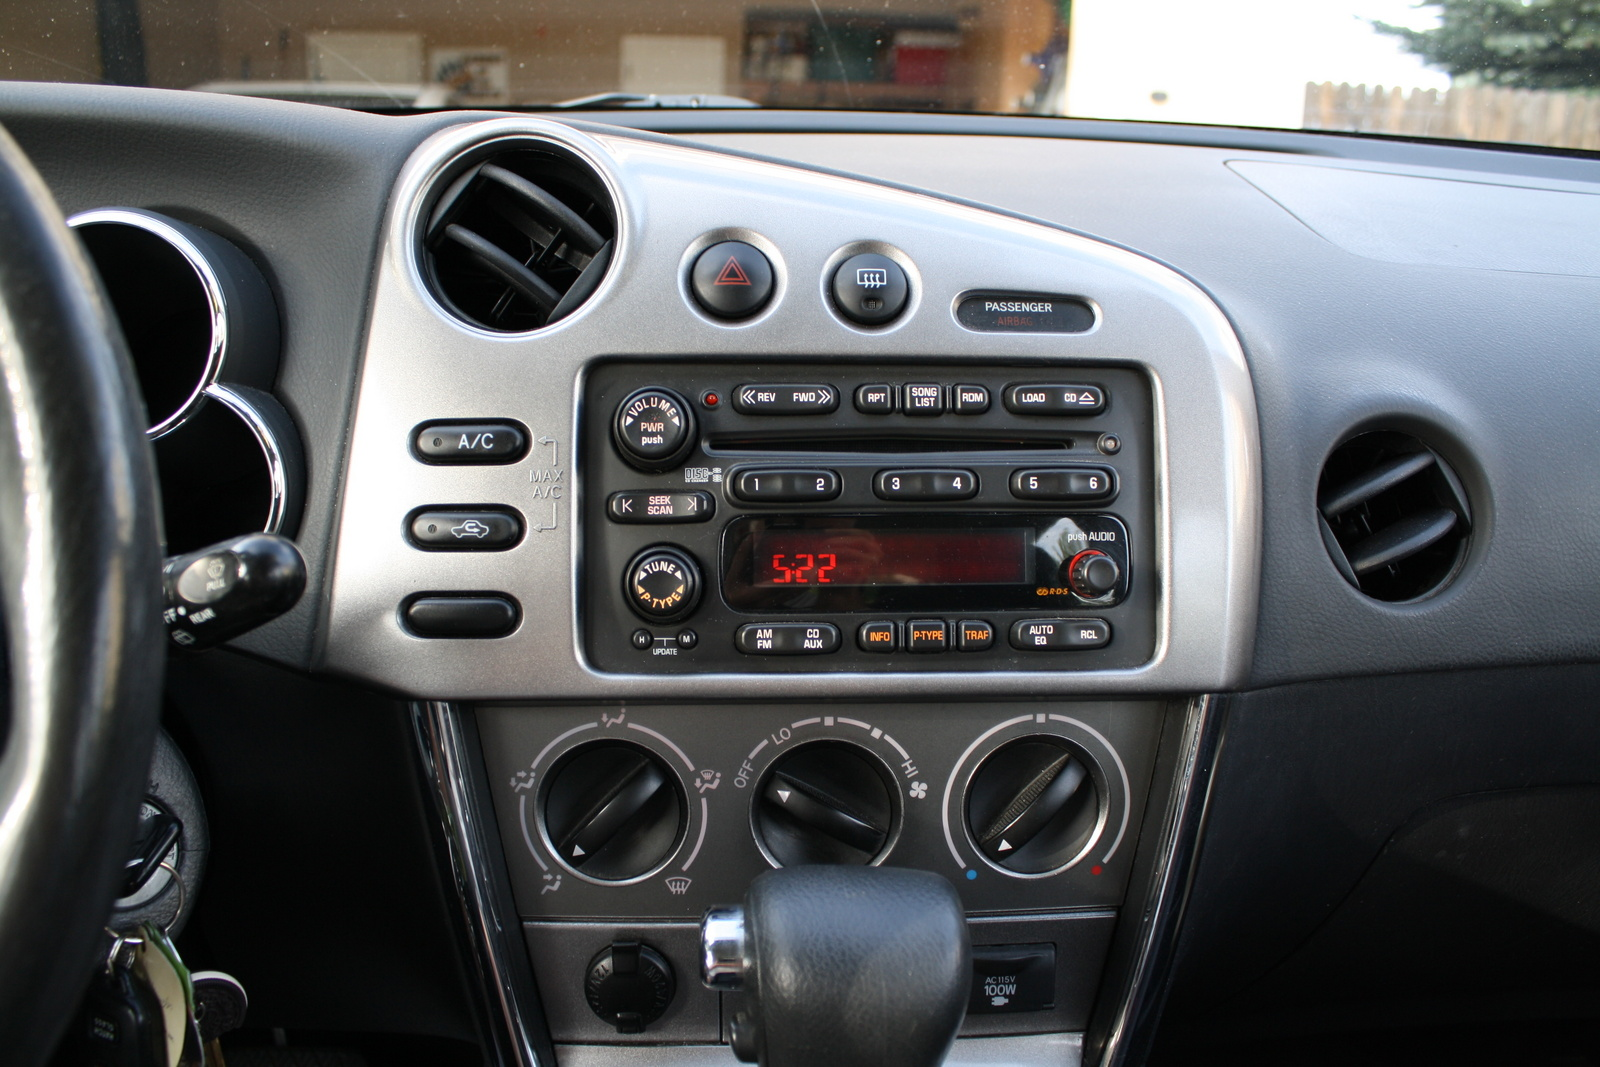 2005 pontiac vibe interior pictures cargurus. Black Bedroom Furniture Sets. Home Design Ideas